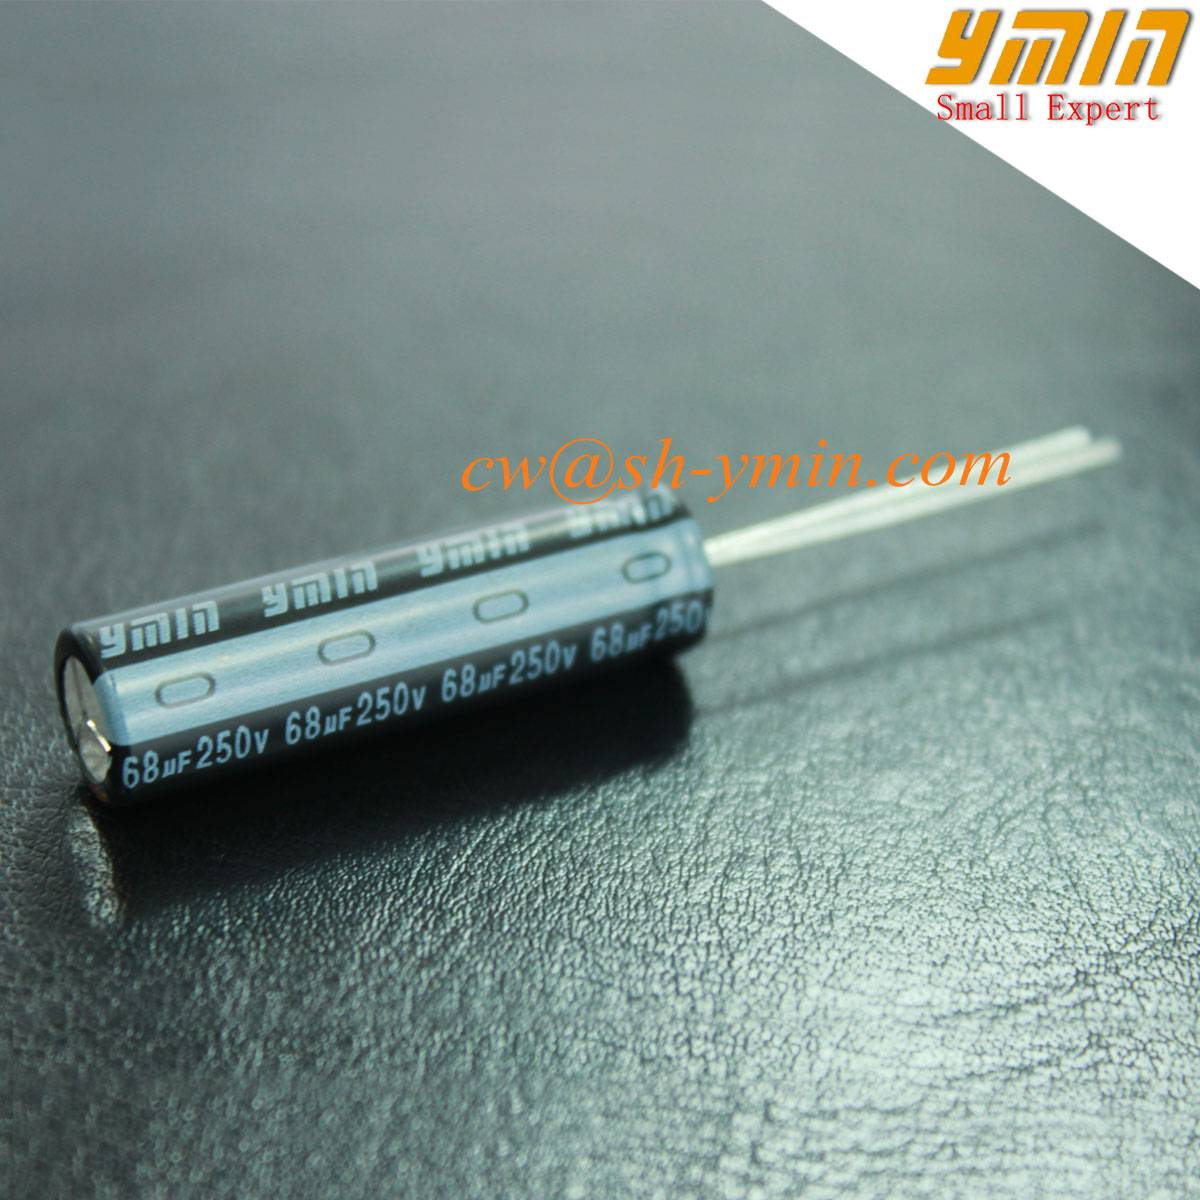 6000 Hours 250V 68uF Capacitor Radial Aluminum Electrolytic Capacitor for LED Lighting and General P